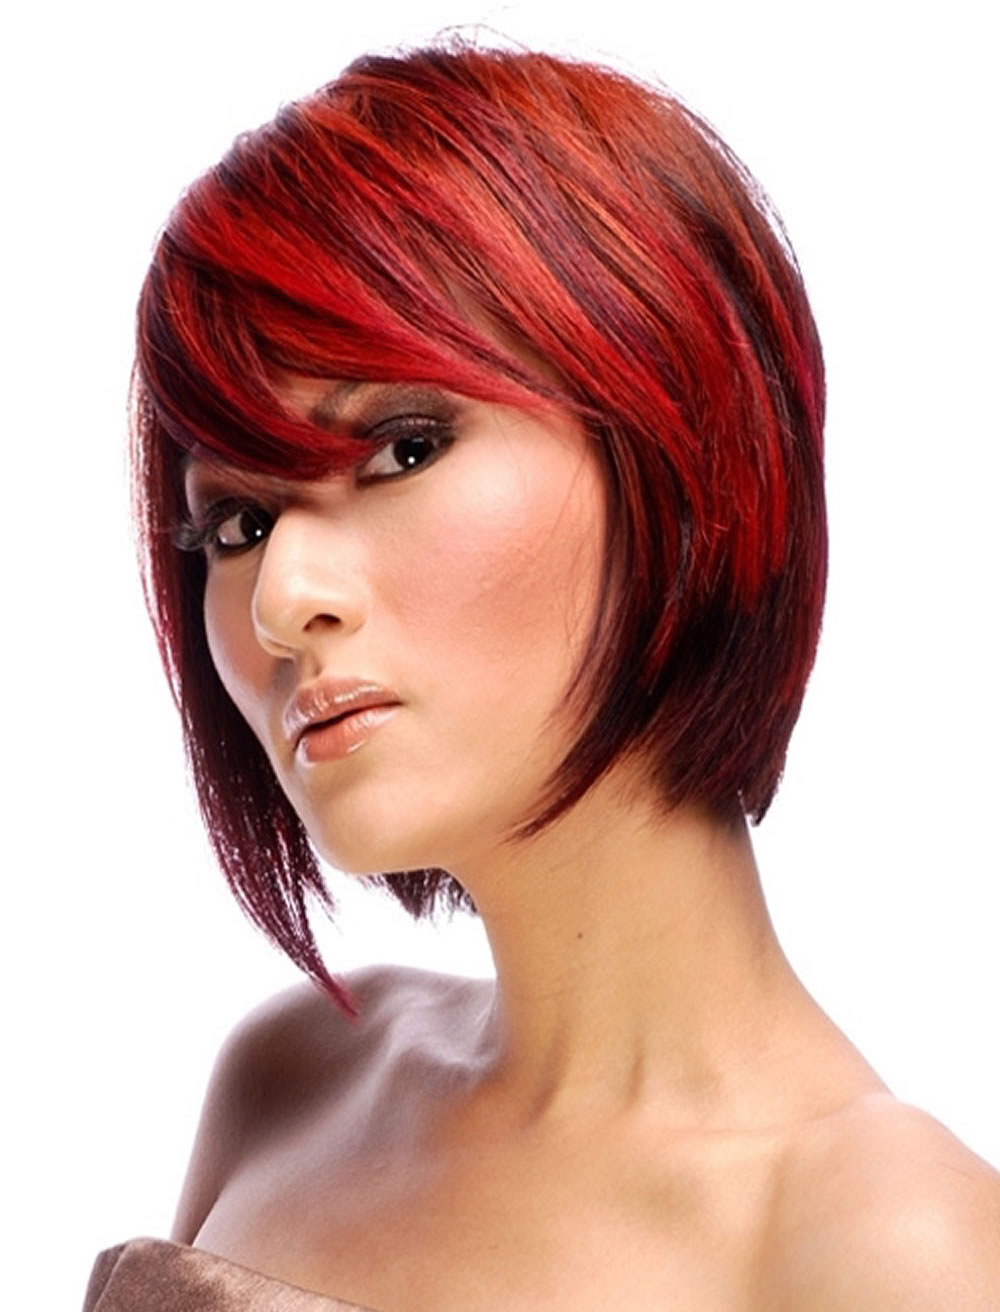 Red Hair Color For Short Hairstyles | 27 Cool Haircut Tutorial For Pertaining To Short Hairstyles With Red Hair (View 6 of 25)